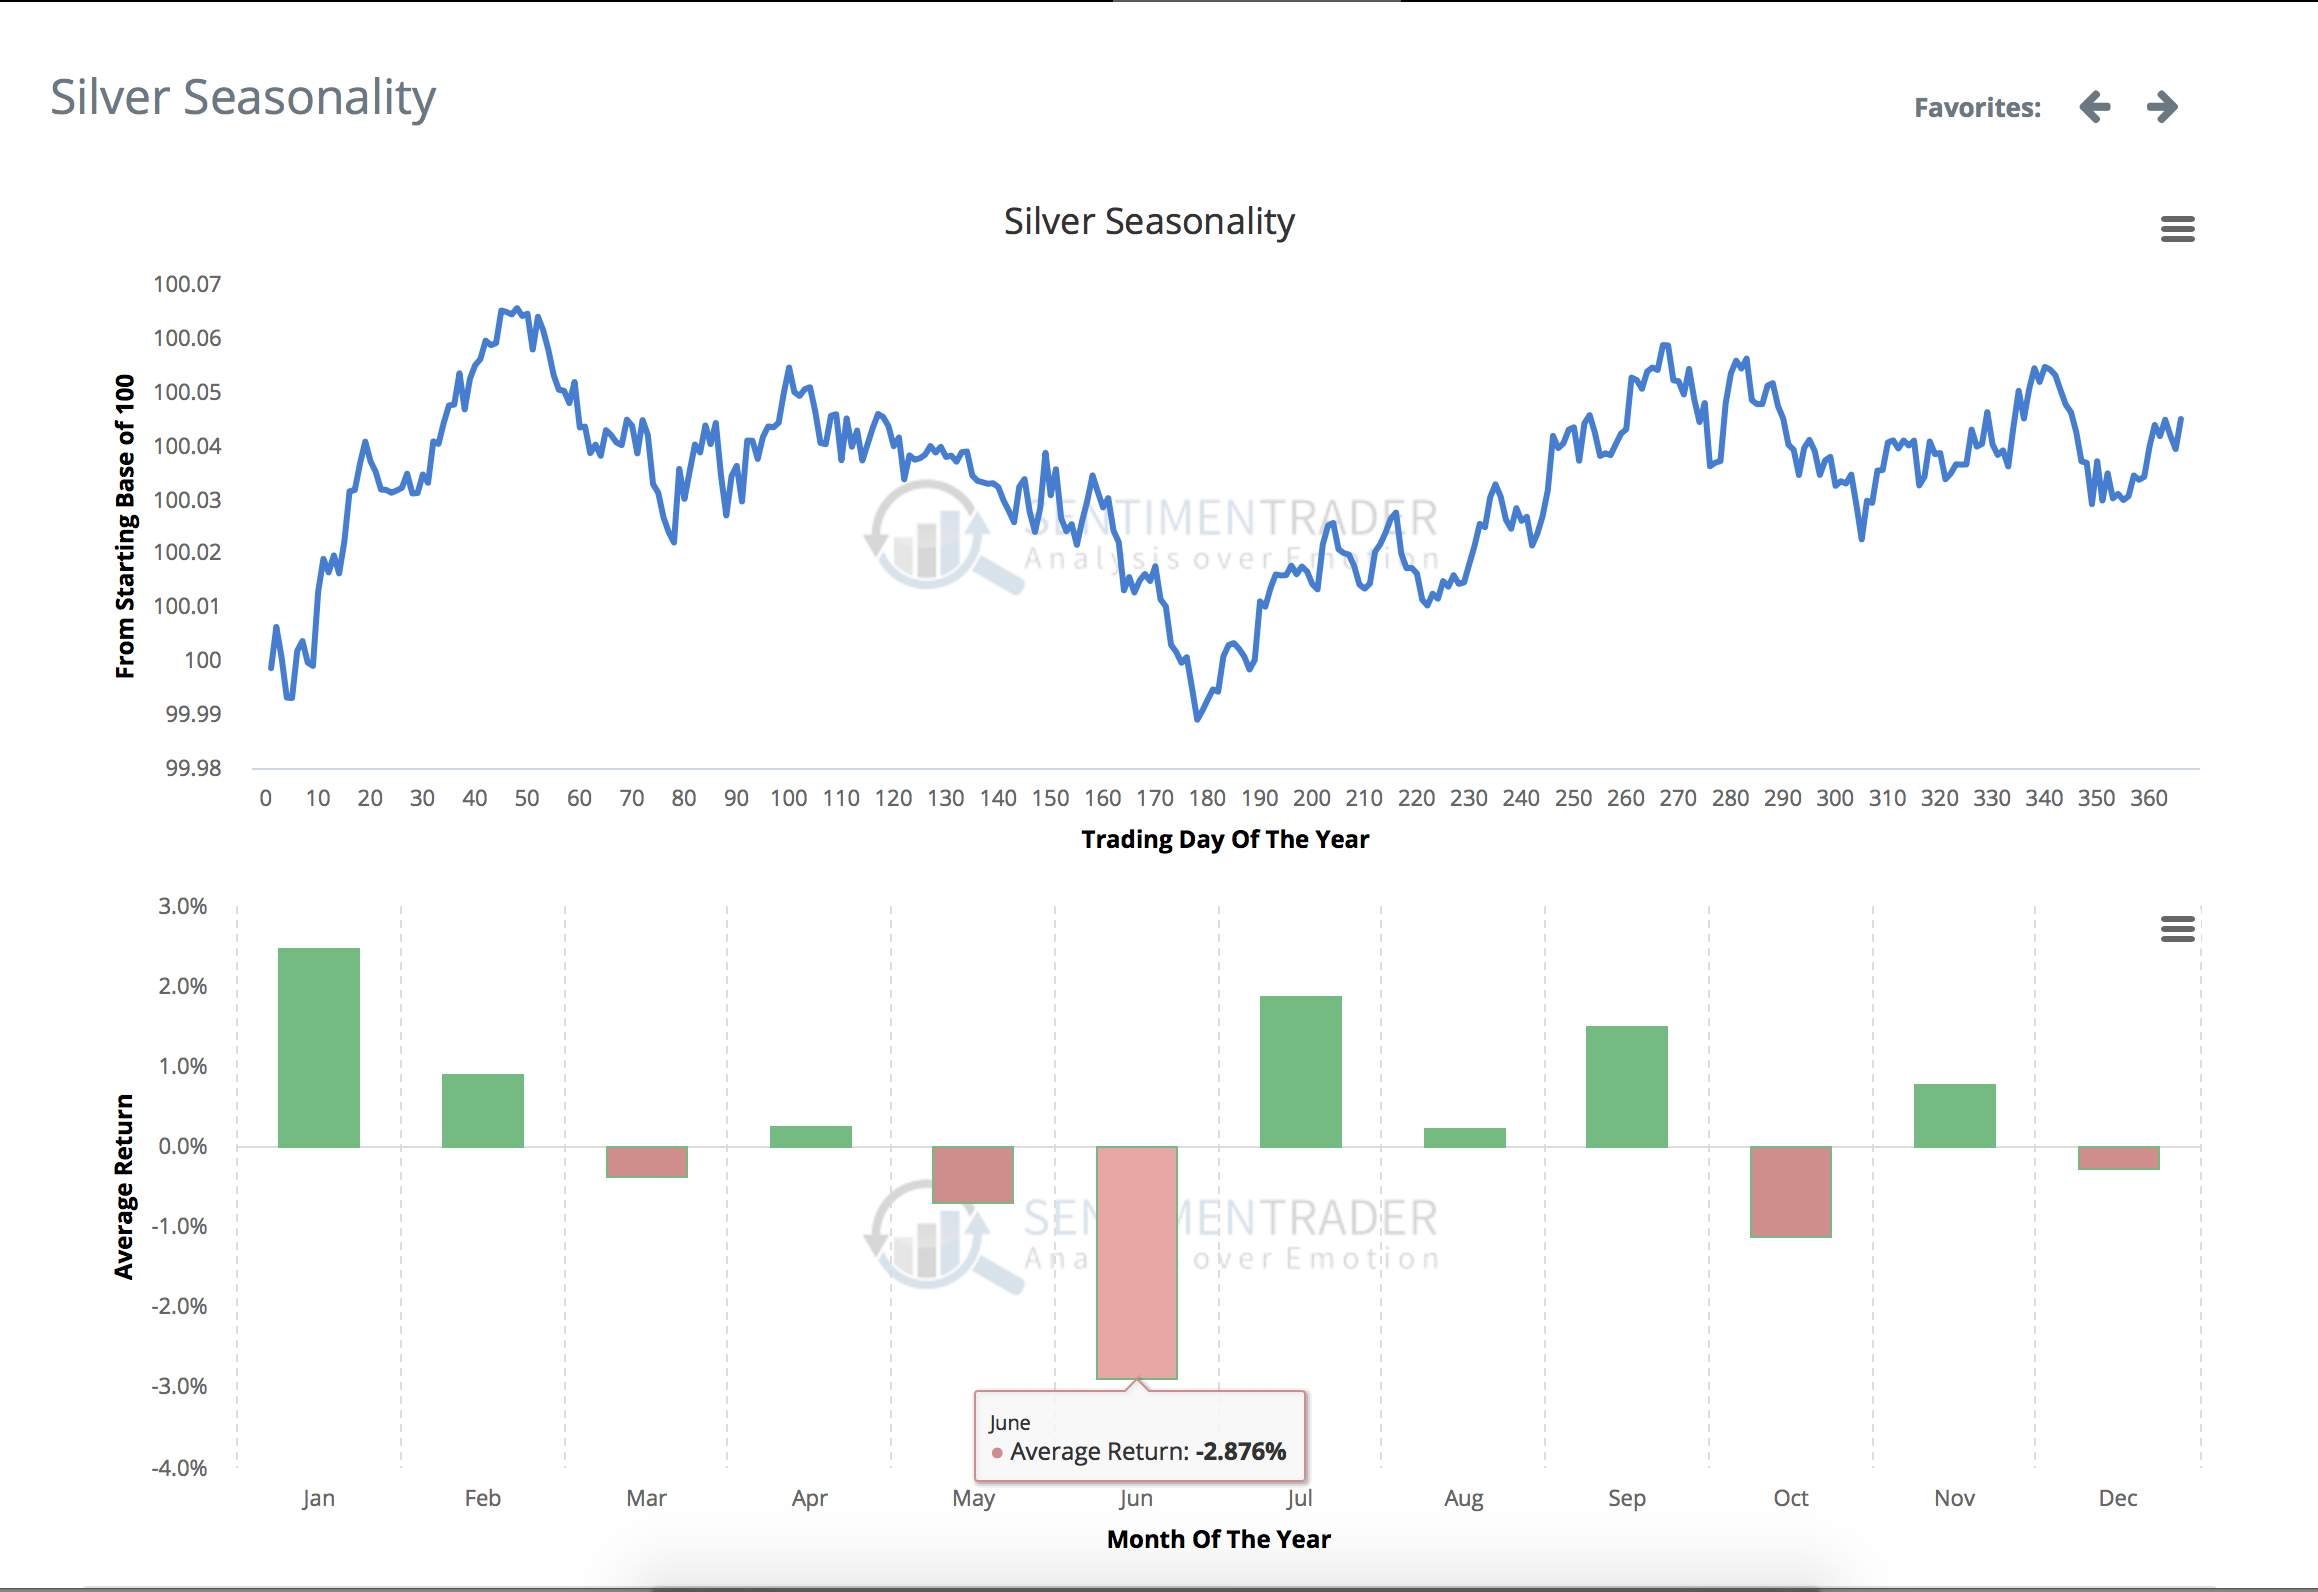 Silver seasonality over the last 40 years